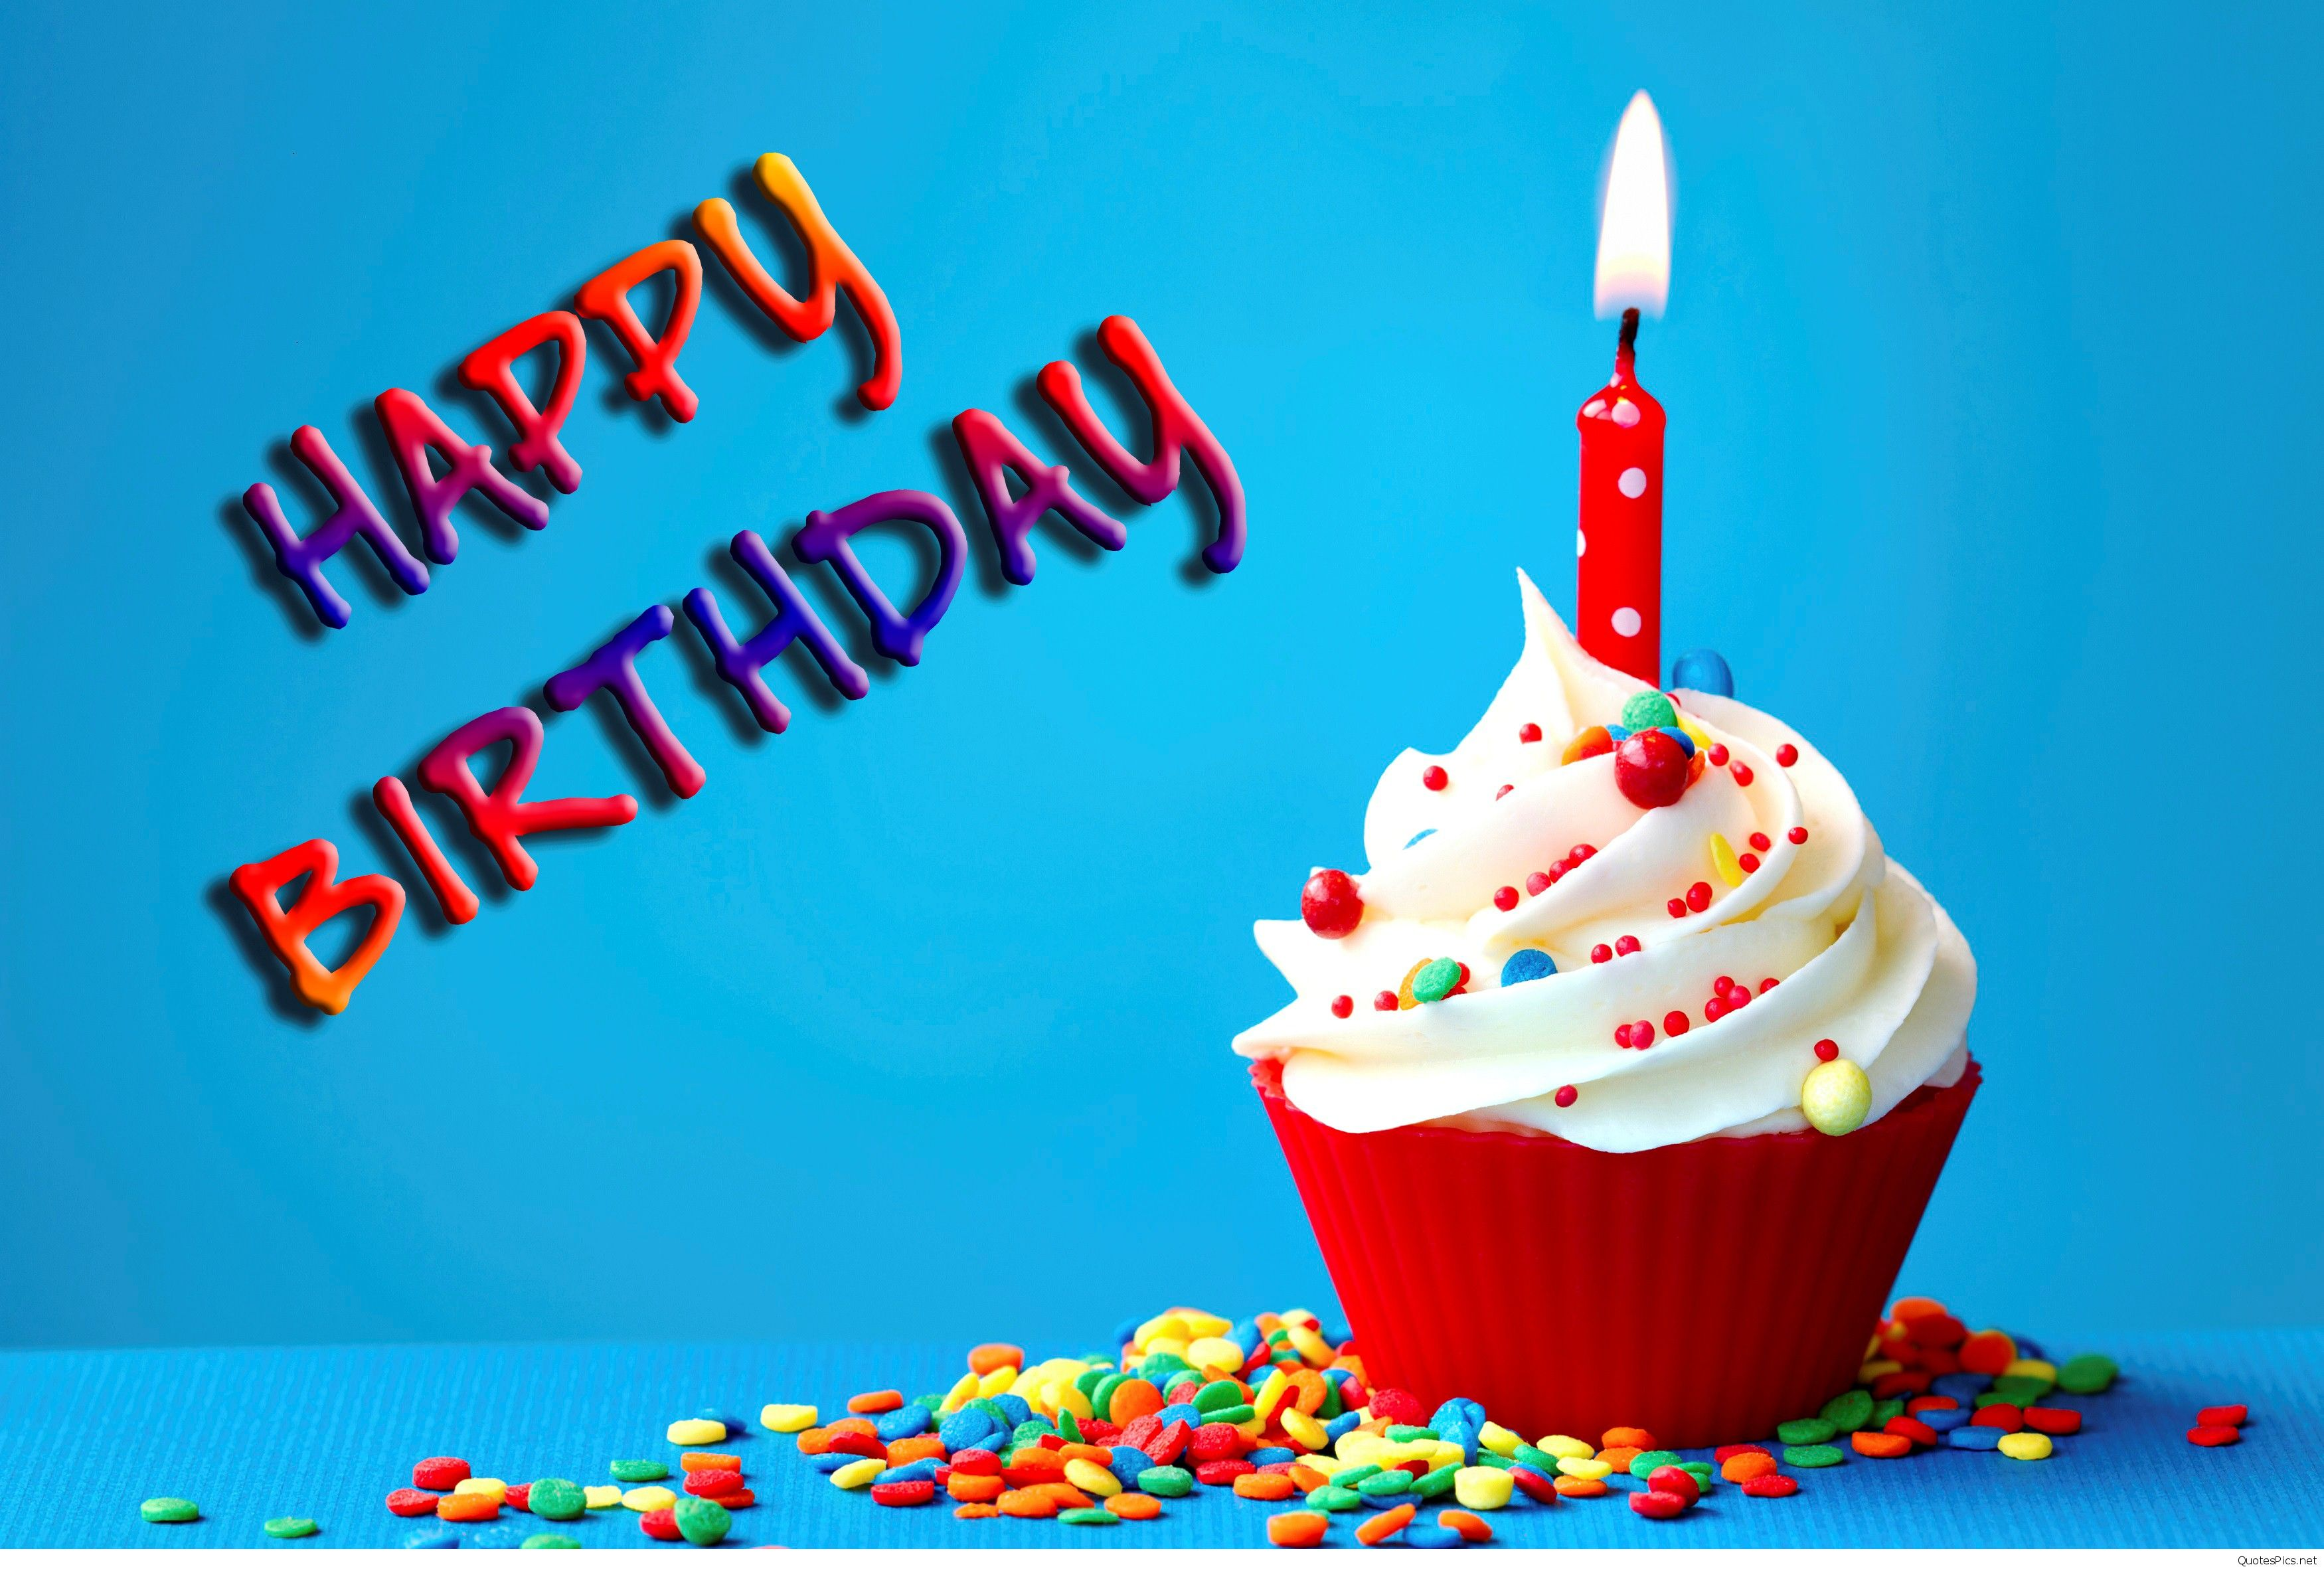 birthday wishes images hd ; Amazing_Birthday_Wish_with_Cake_and_Candle_Wallpaper